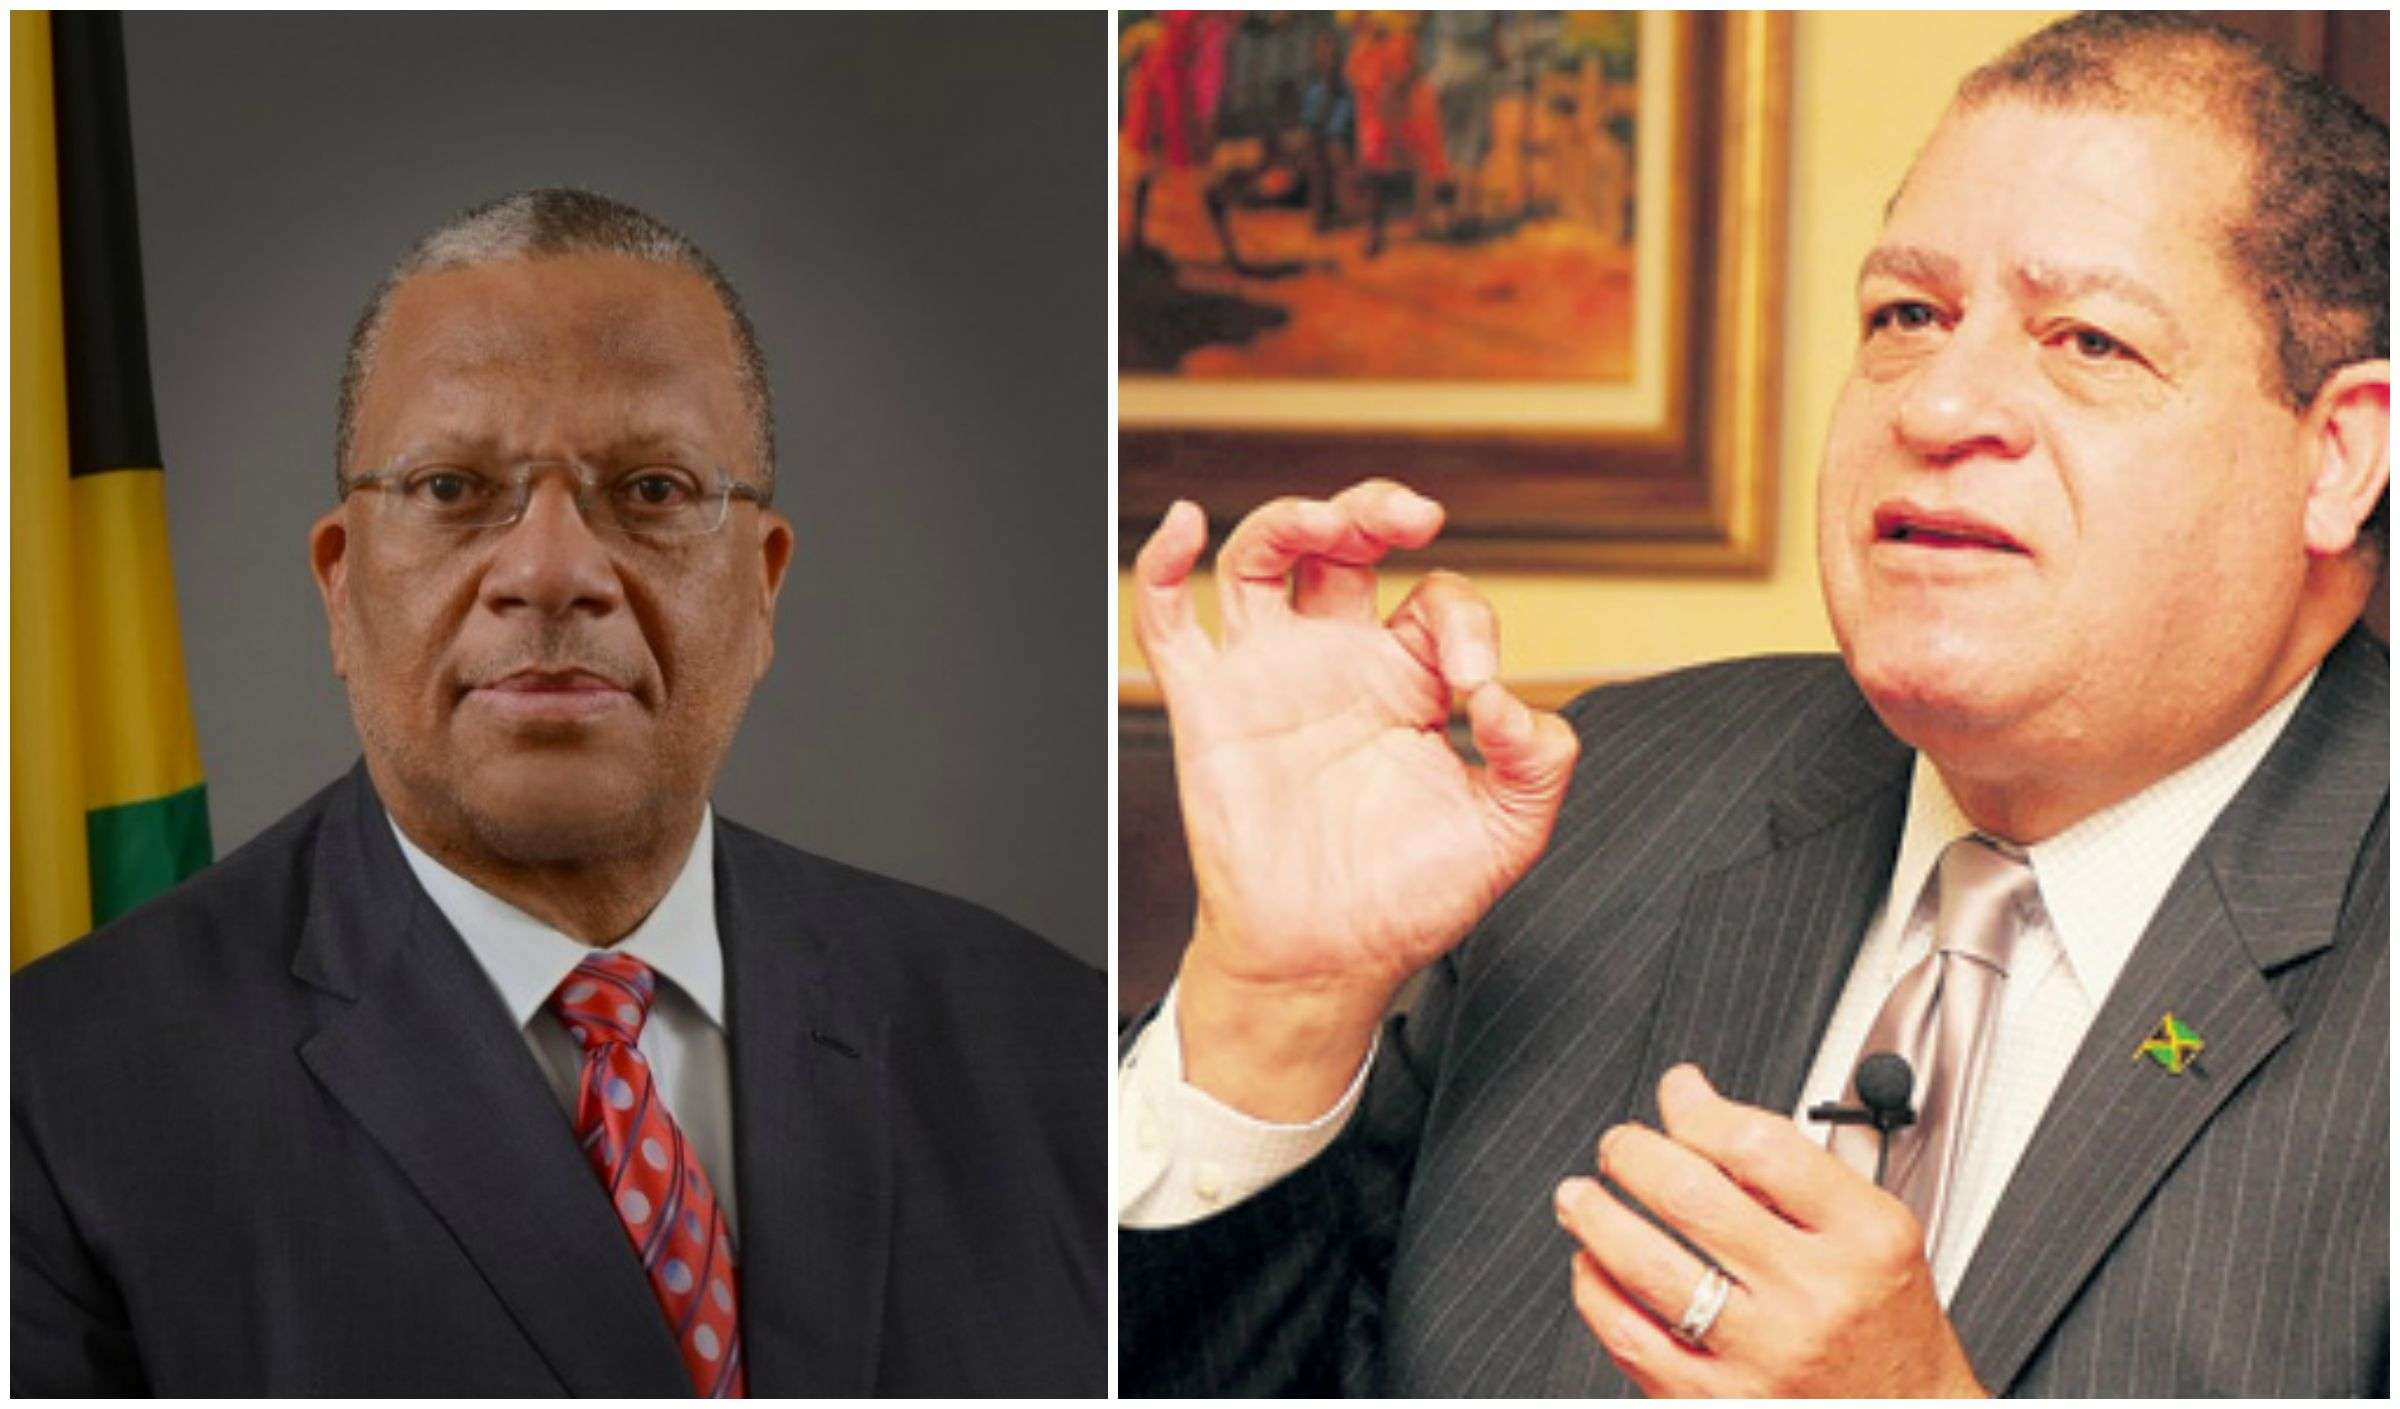 Audley Shaw calls out Dr. Phillips as being fiduciary irresponsible